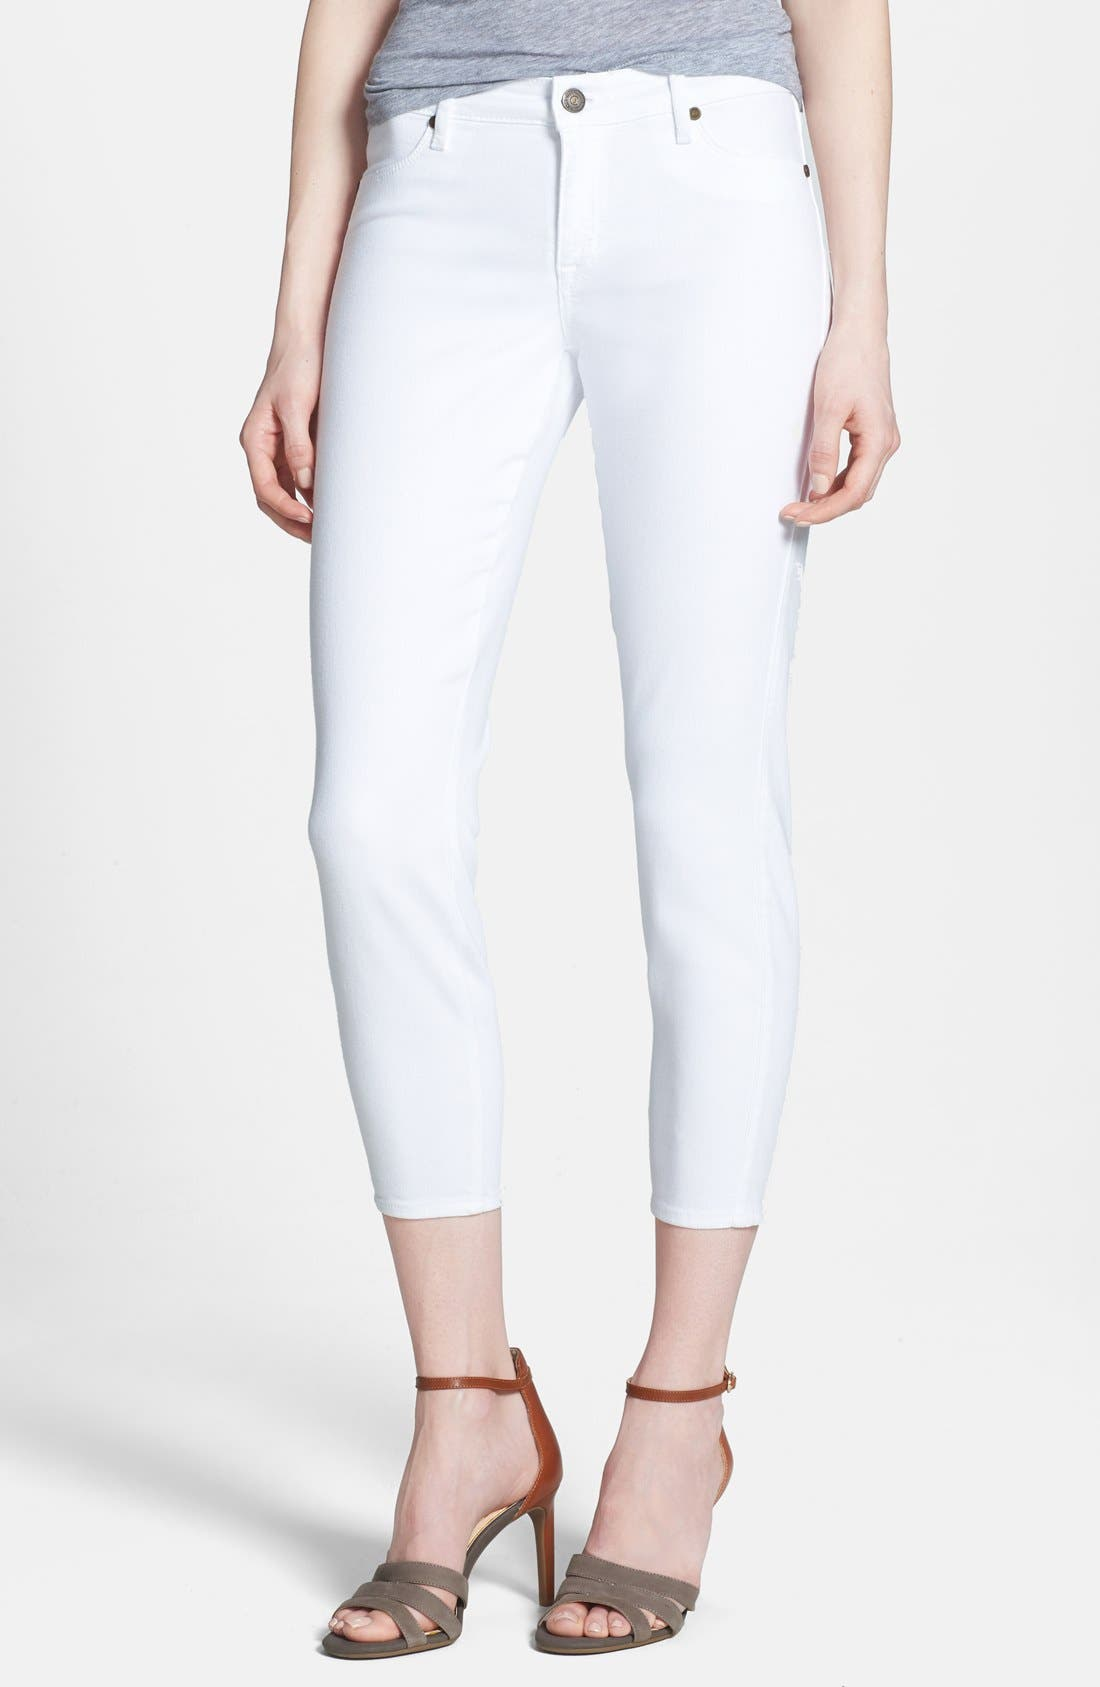 Alternate Image 1 Selected - CJ by Cookie Johnson 'Believe' Stretch Twill Crop Leggings